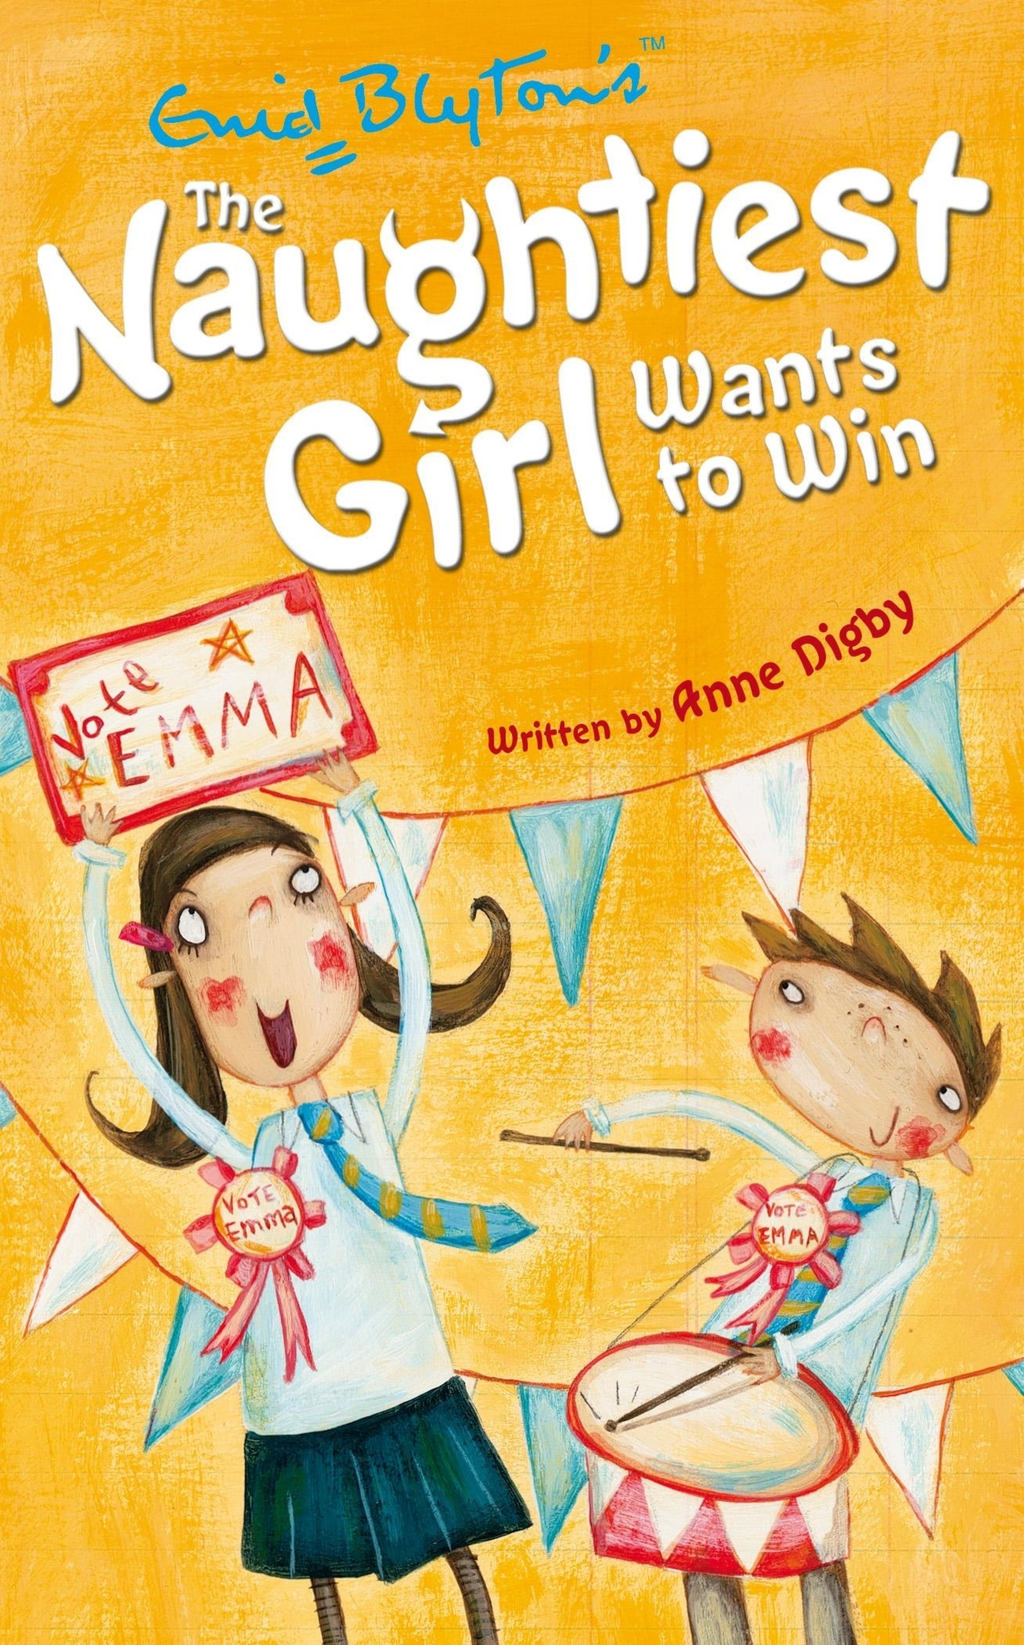 Naughtiest Girl 9: Naughtiest Girl Wants To Win